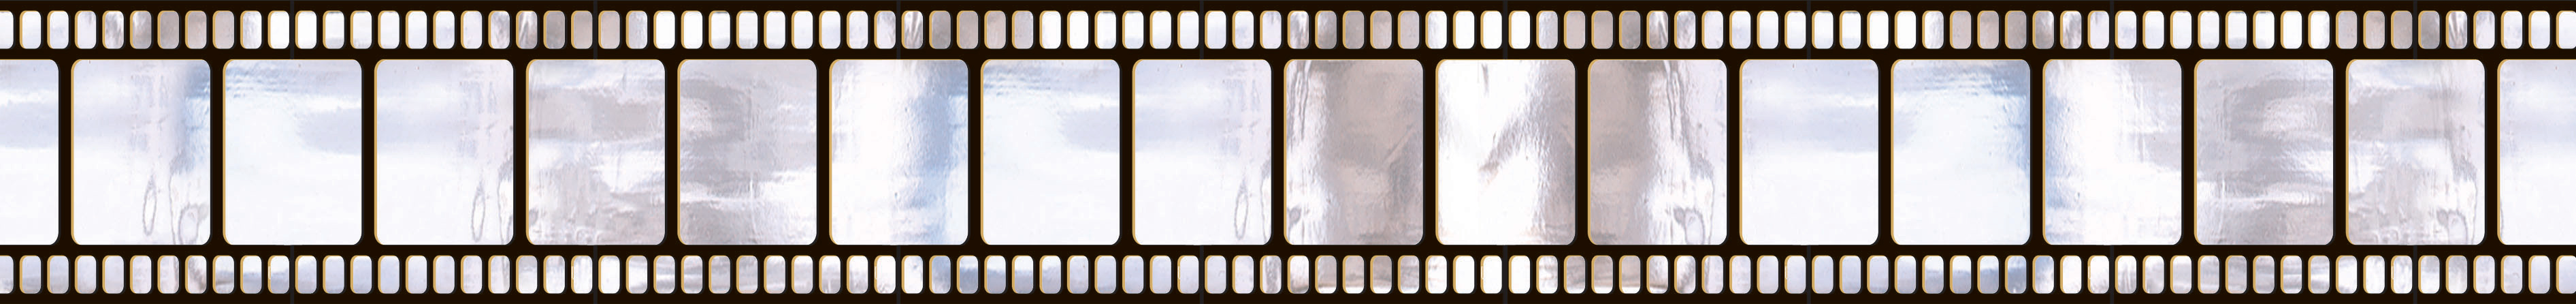 Hollywood Metallic Film Border Hollywood Lights Border